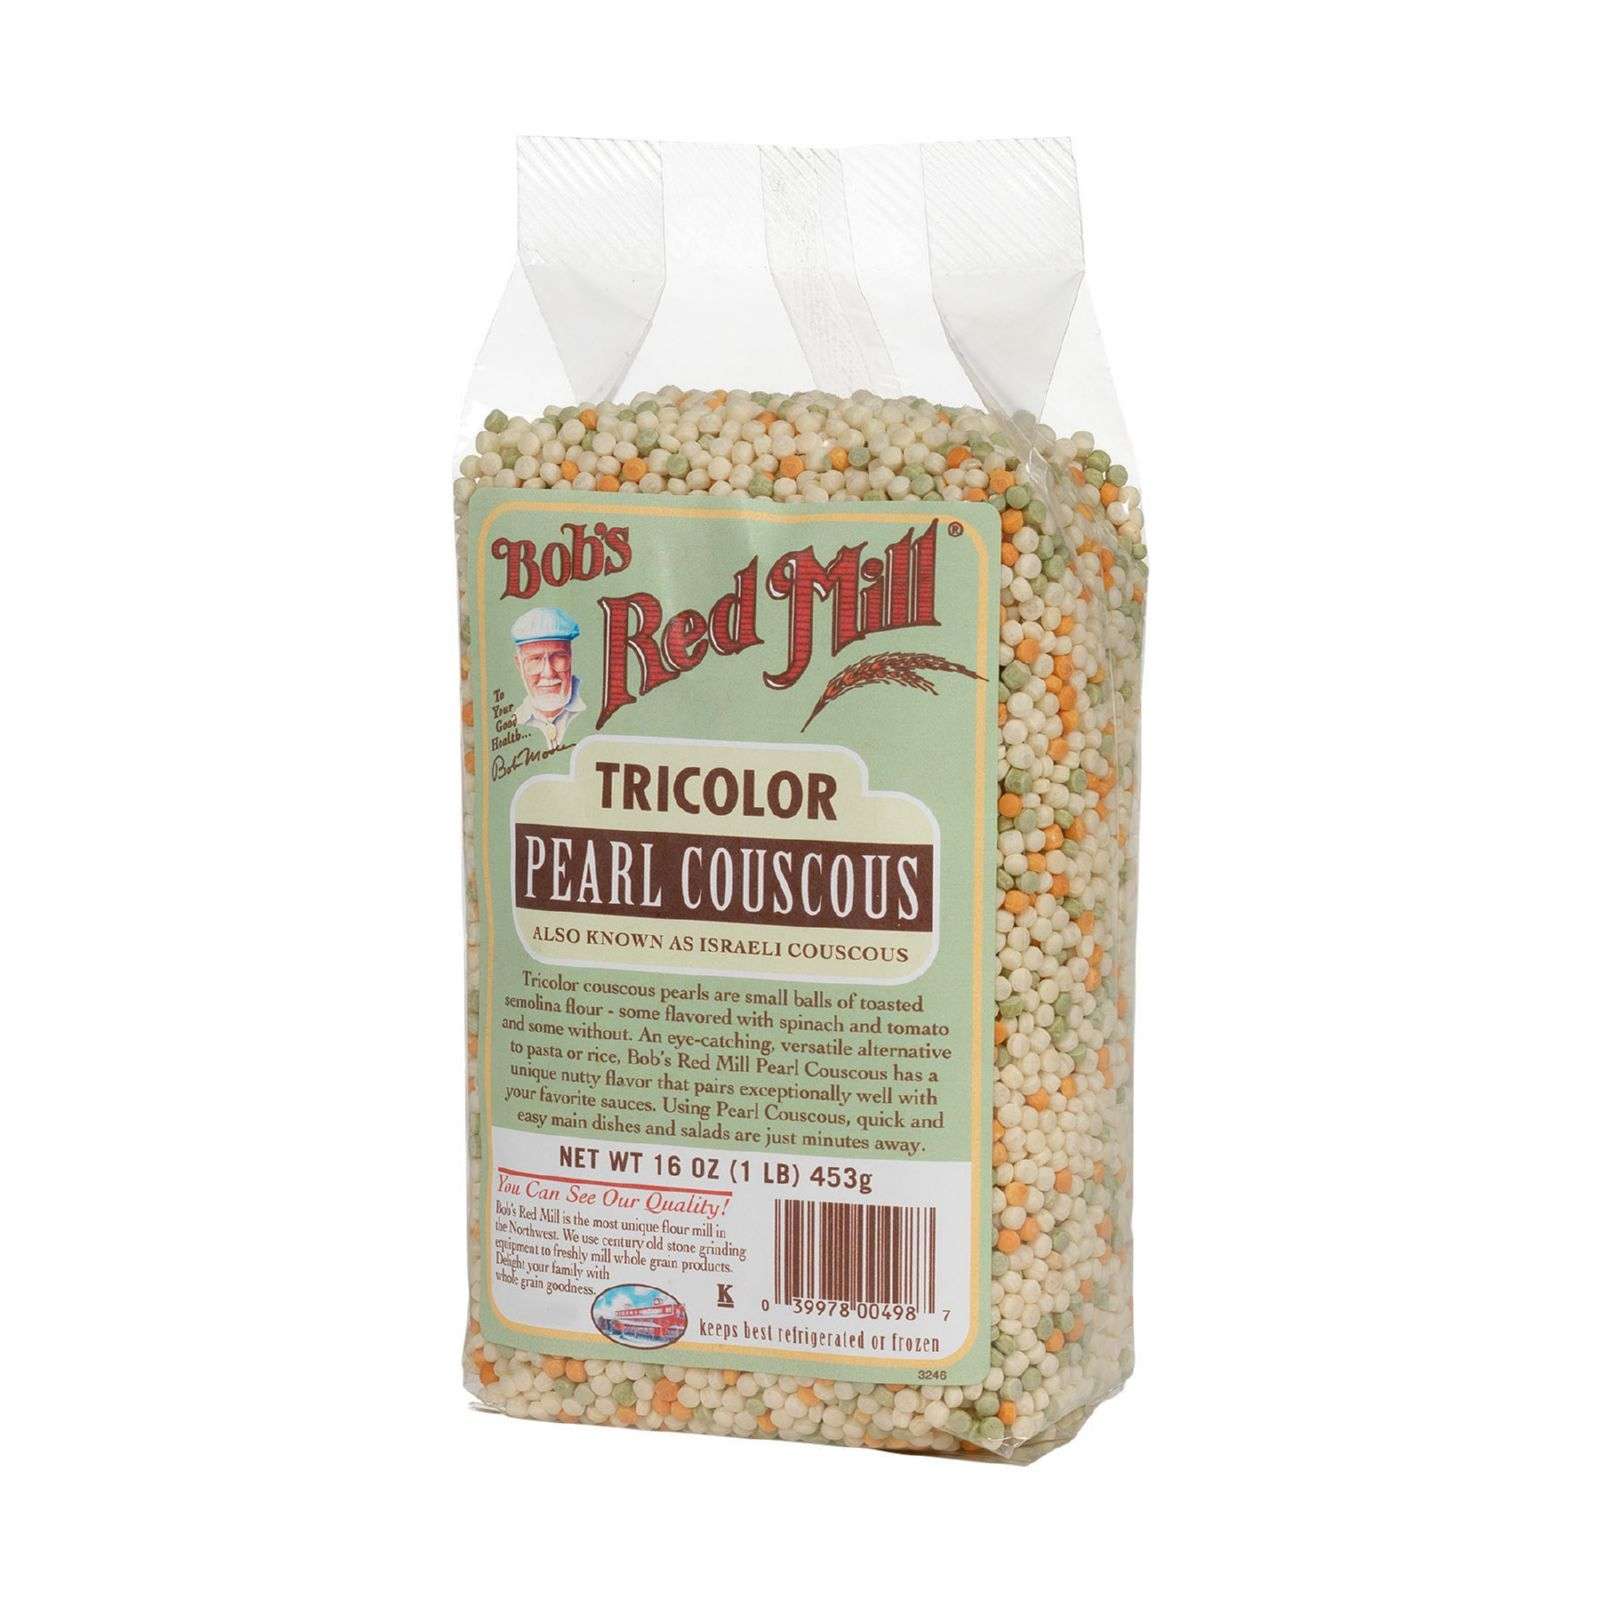 Bob's Red Mill Tri-Color Pearl Couscous - 16 oz - Case of 4